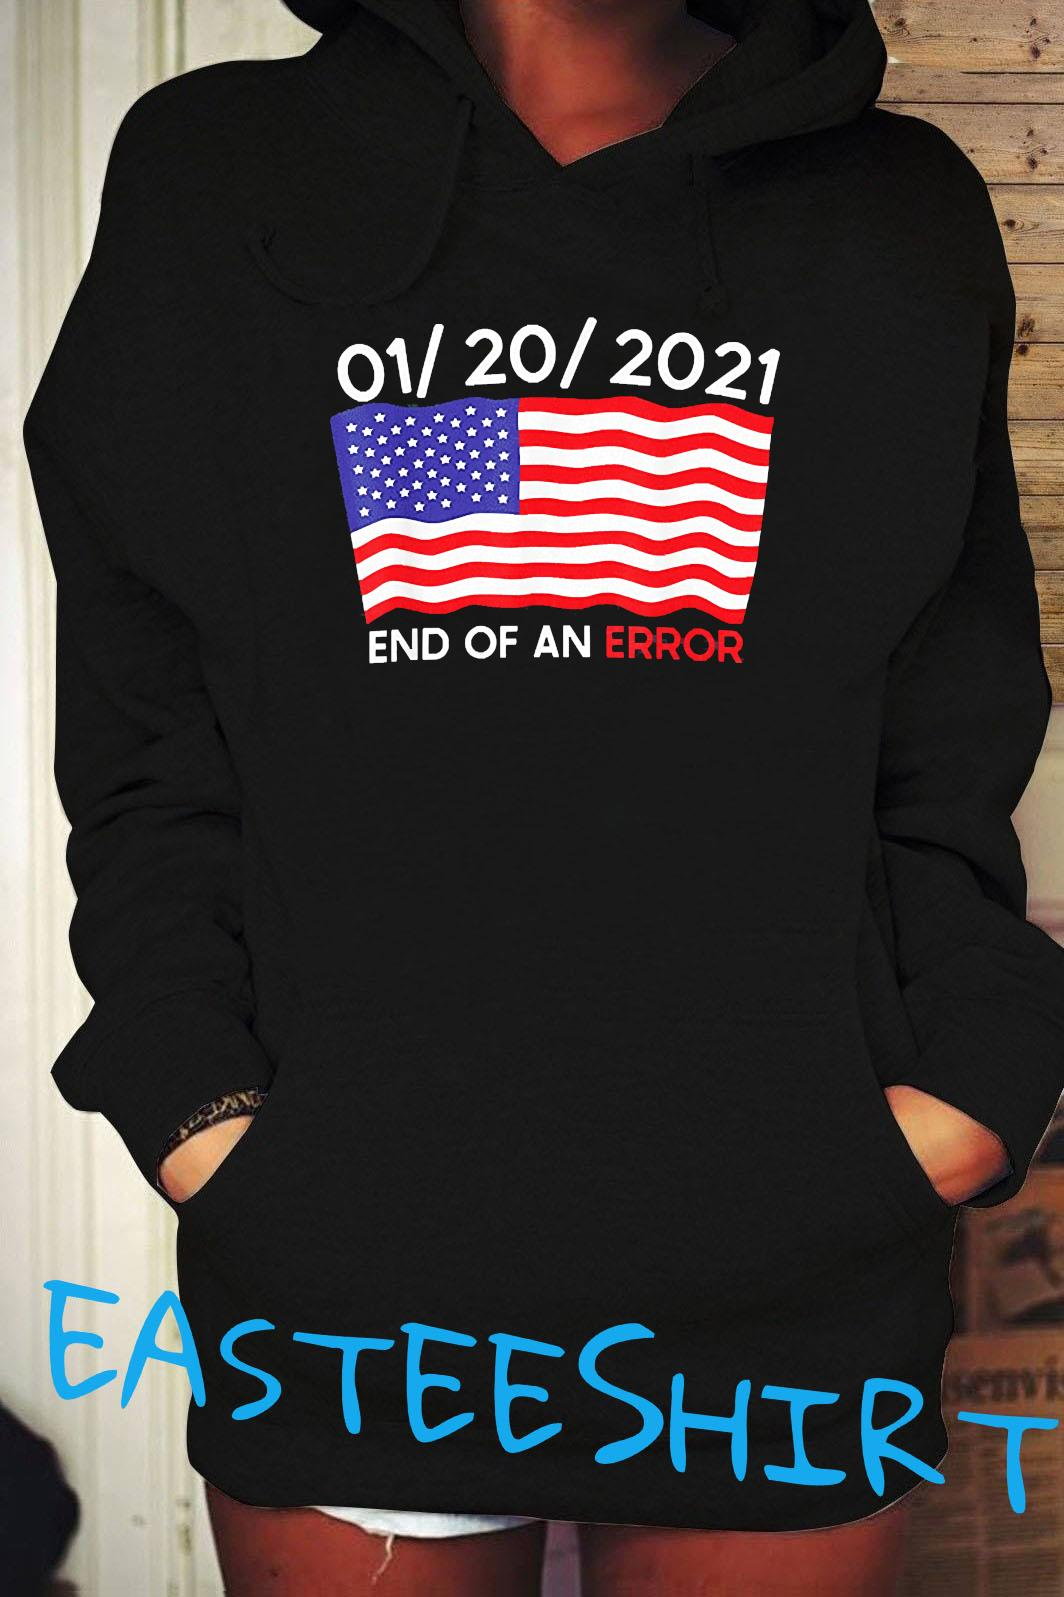 01-20-2021 End Of An Error Joe Biden Inauguration Anti-trump Shirt Hoodie